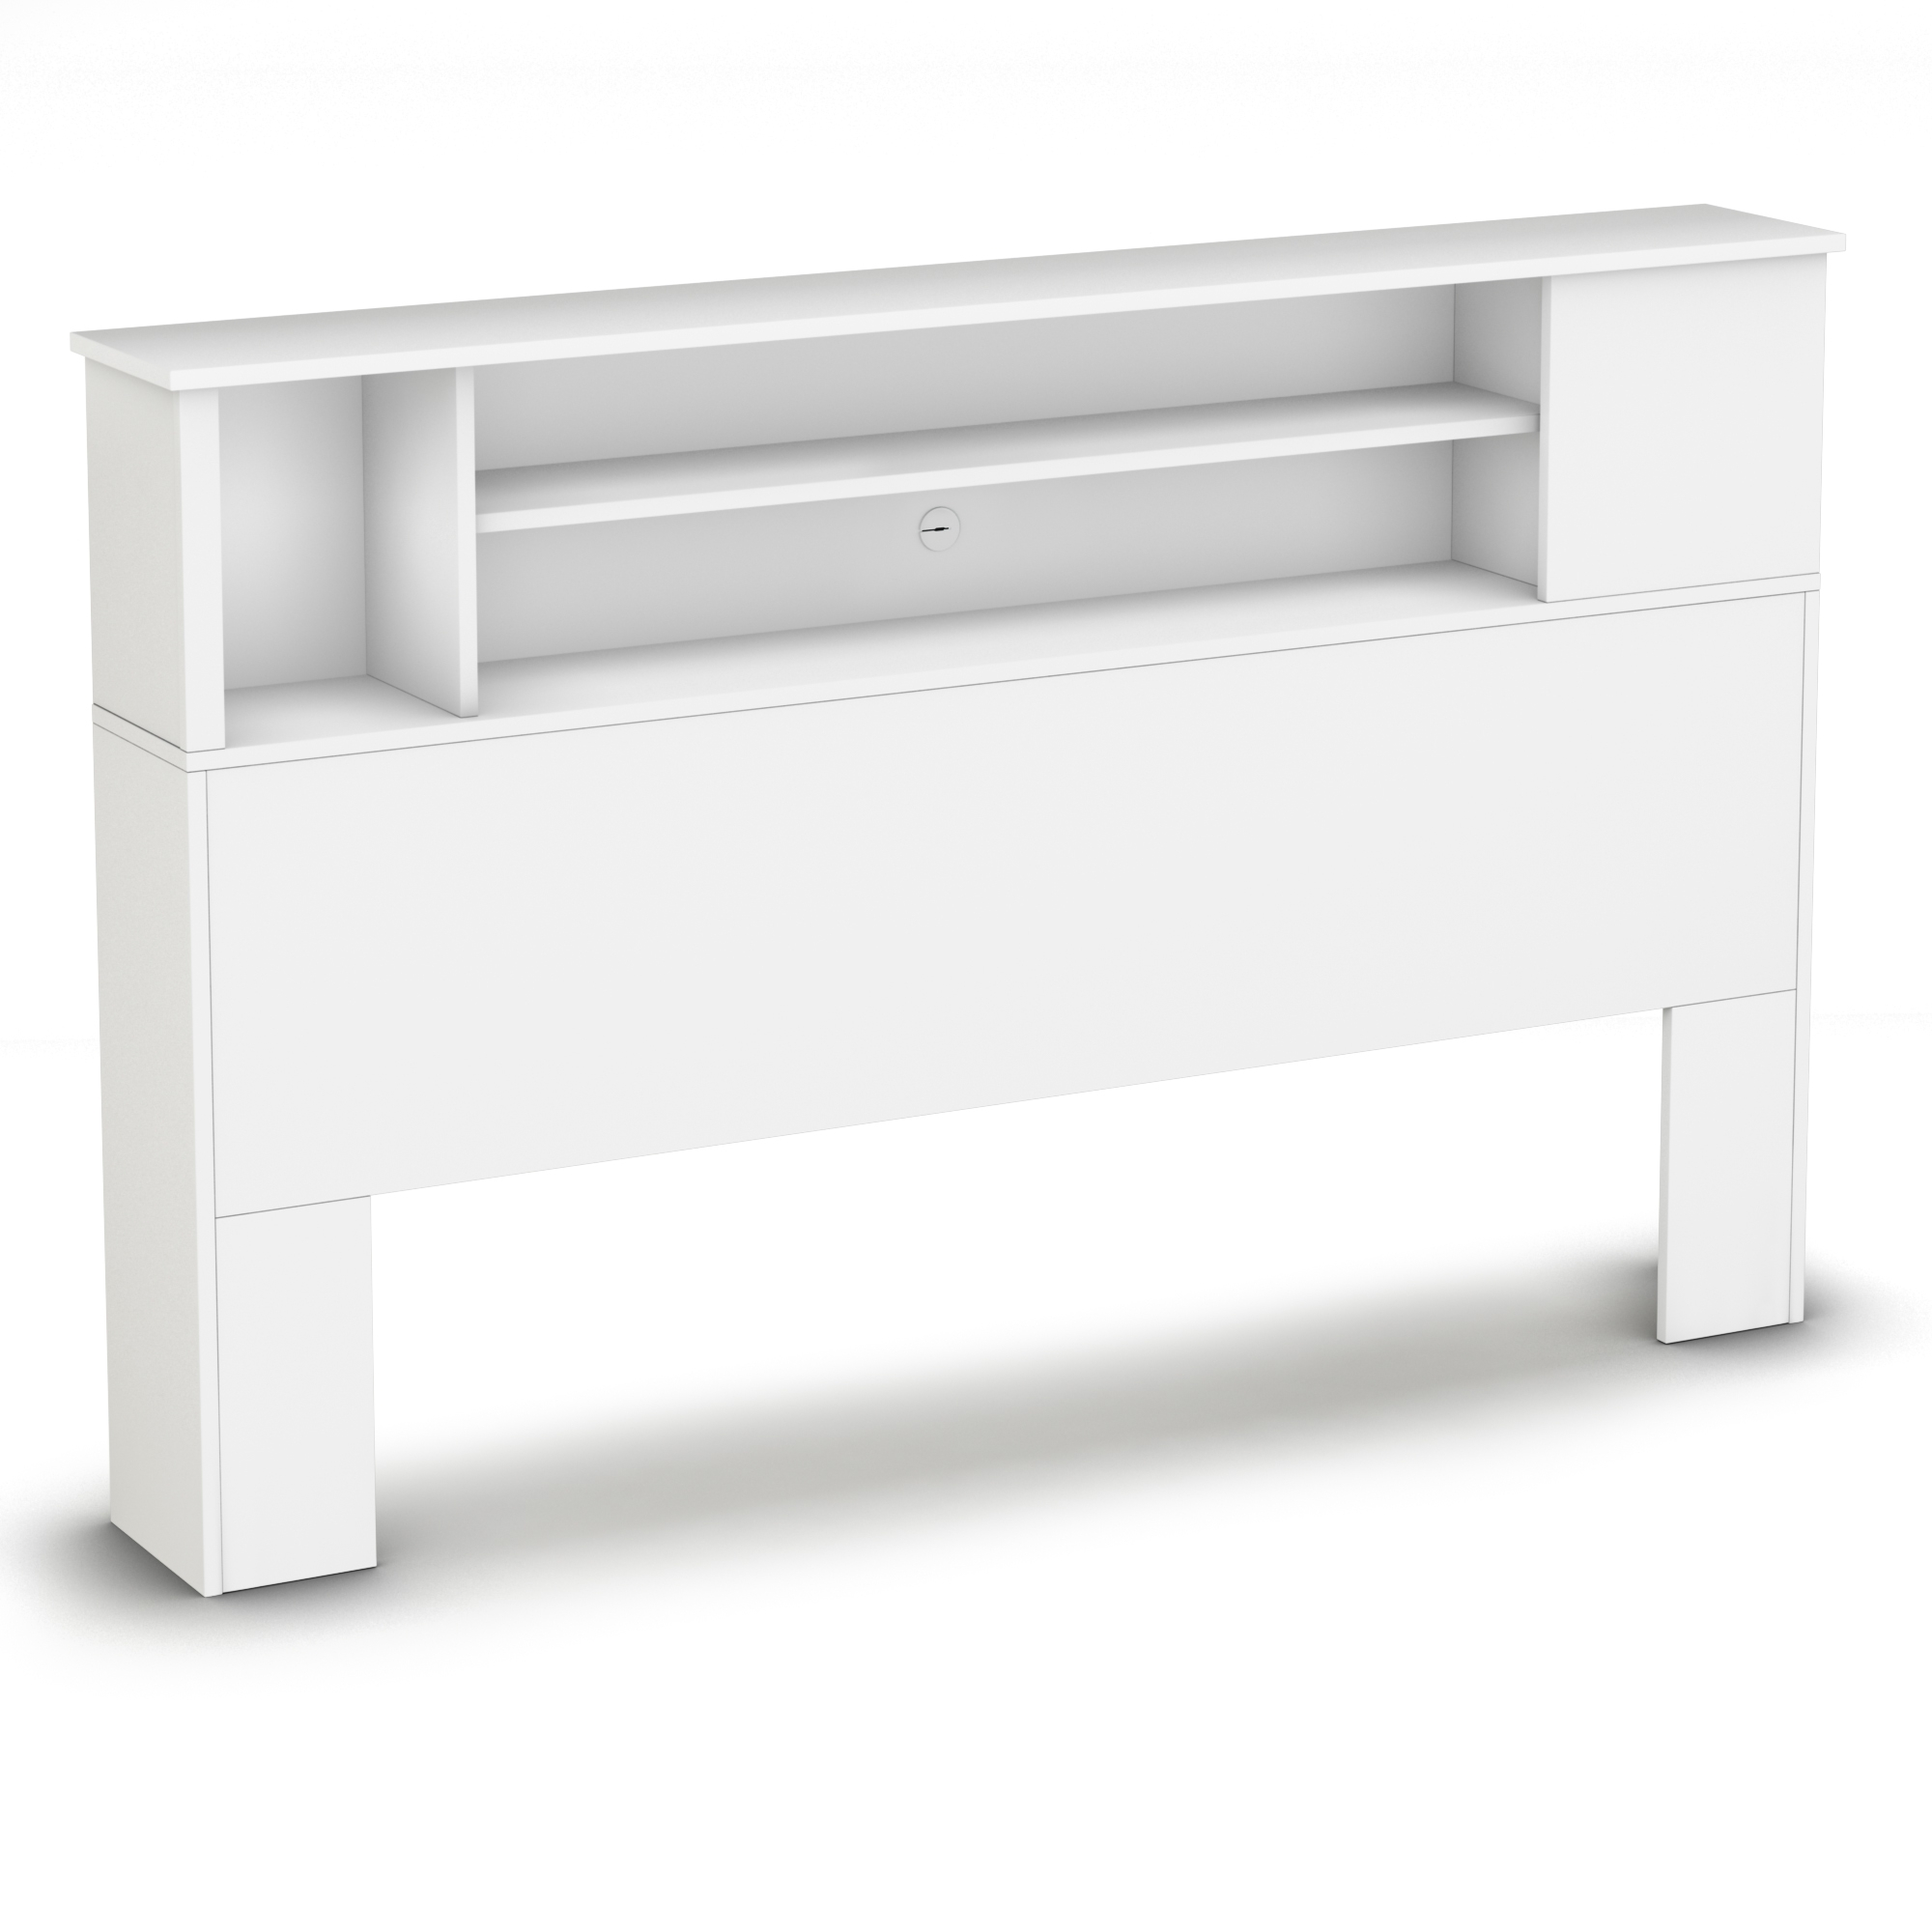 Most Recent South Shore Vito Pure White Full/queen Bookcase Headboard 3150092 Throughout Queen Bookcases Headboard (View 9 of 15)